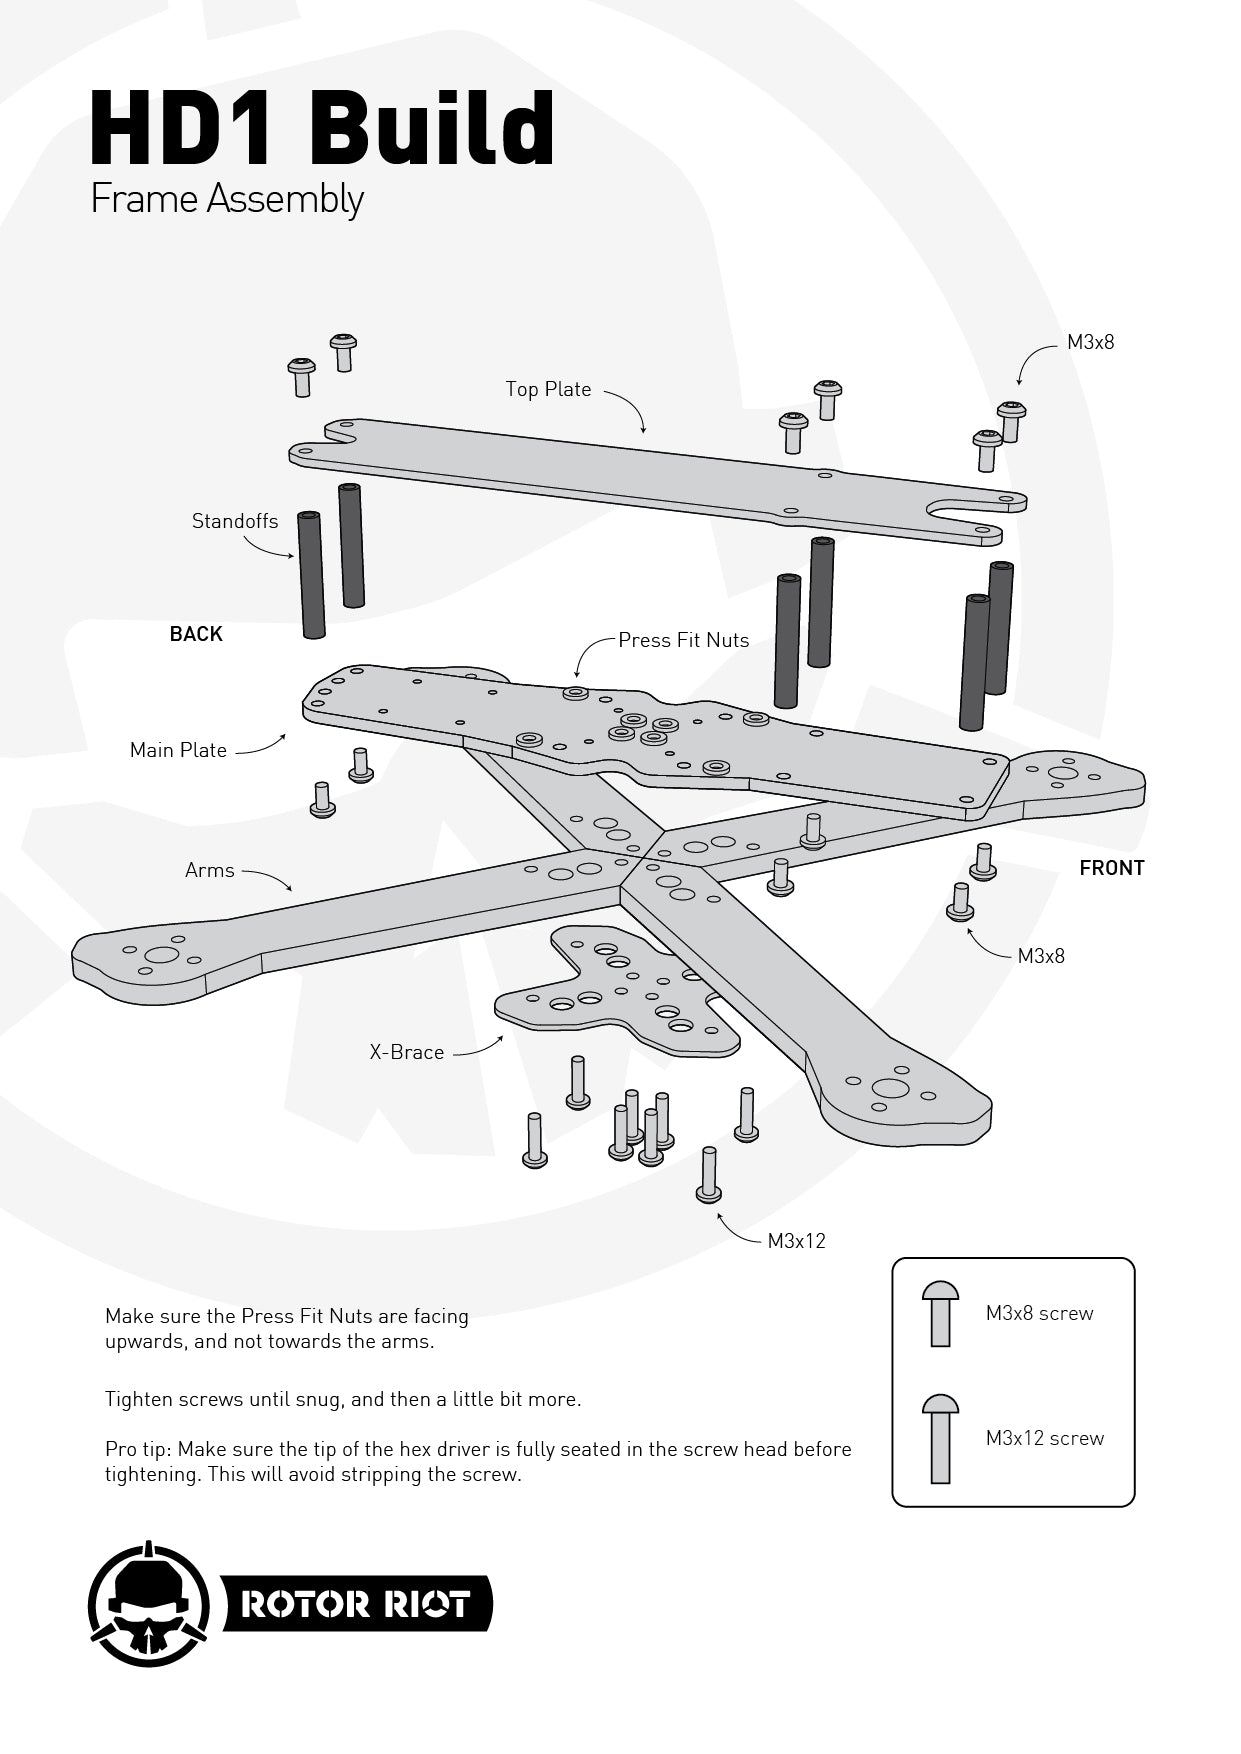 HD1 assembly instructions diagram